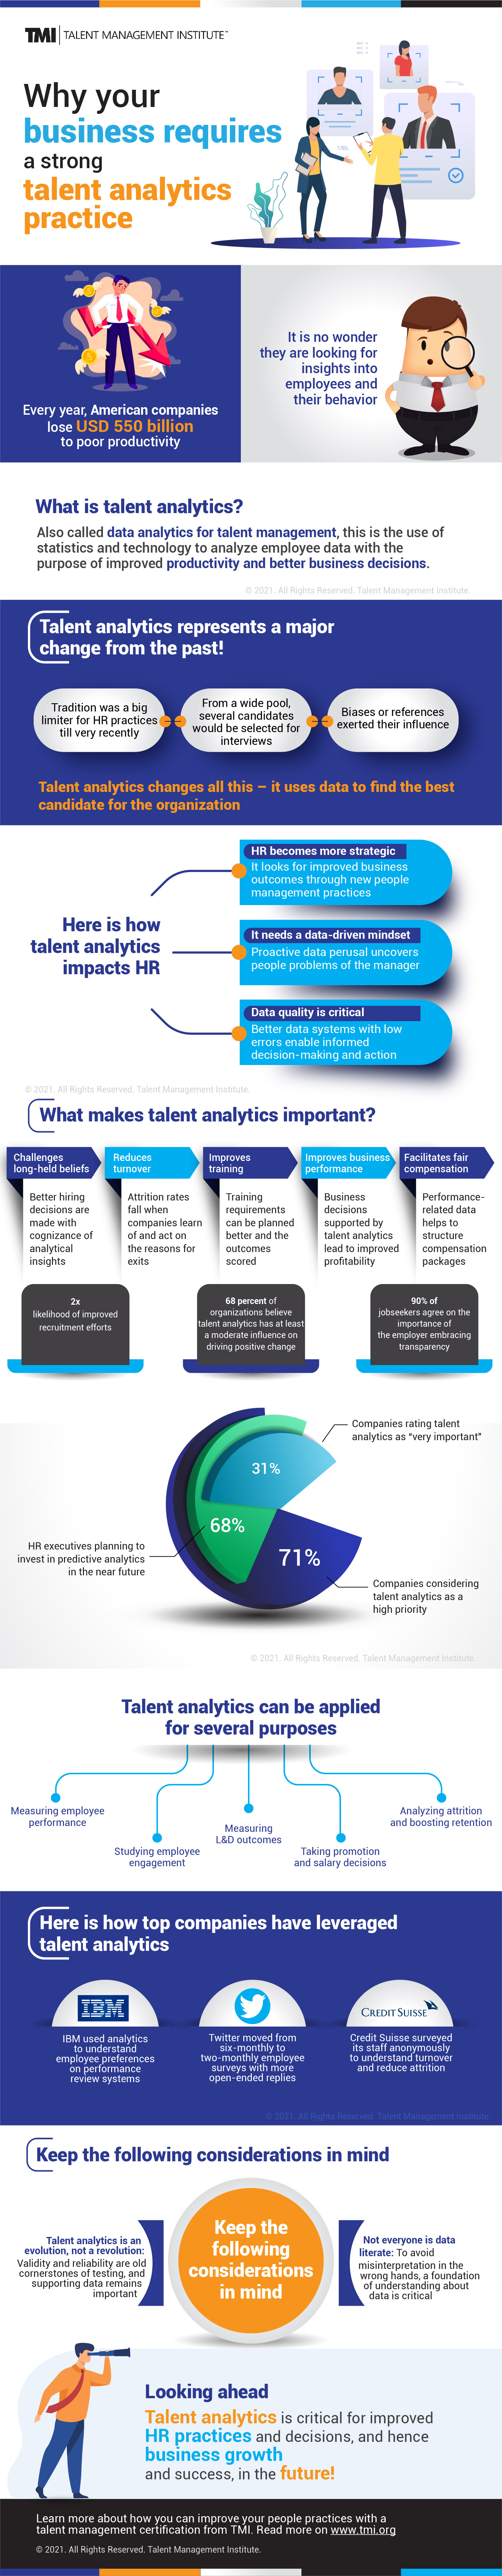 Why talent analytics is important for business success Infographic